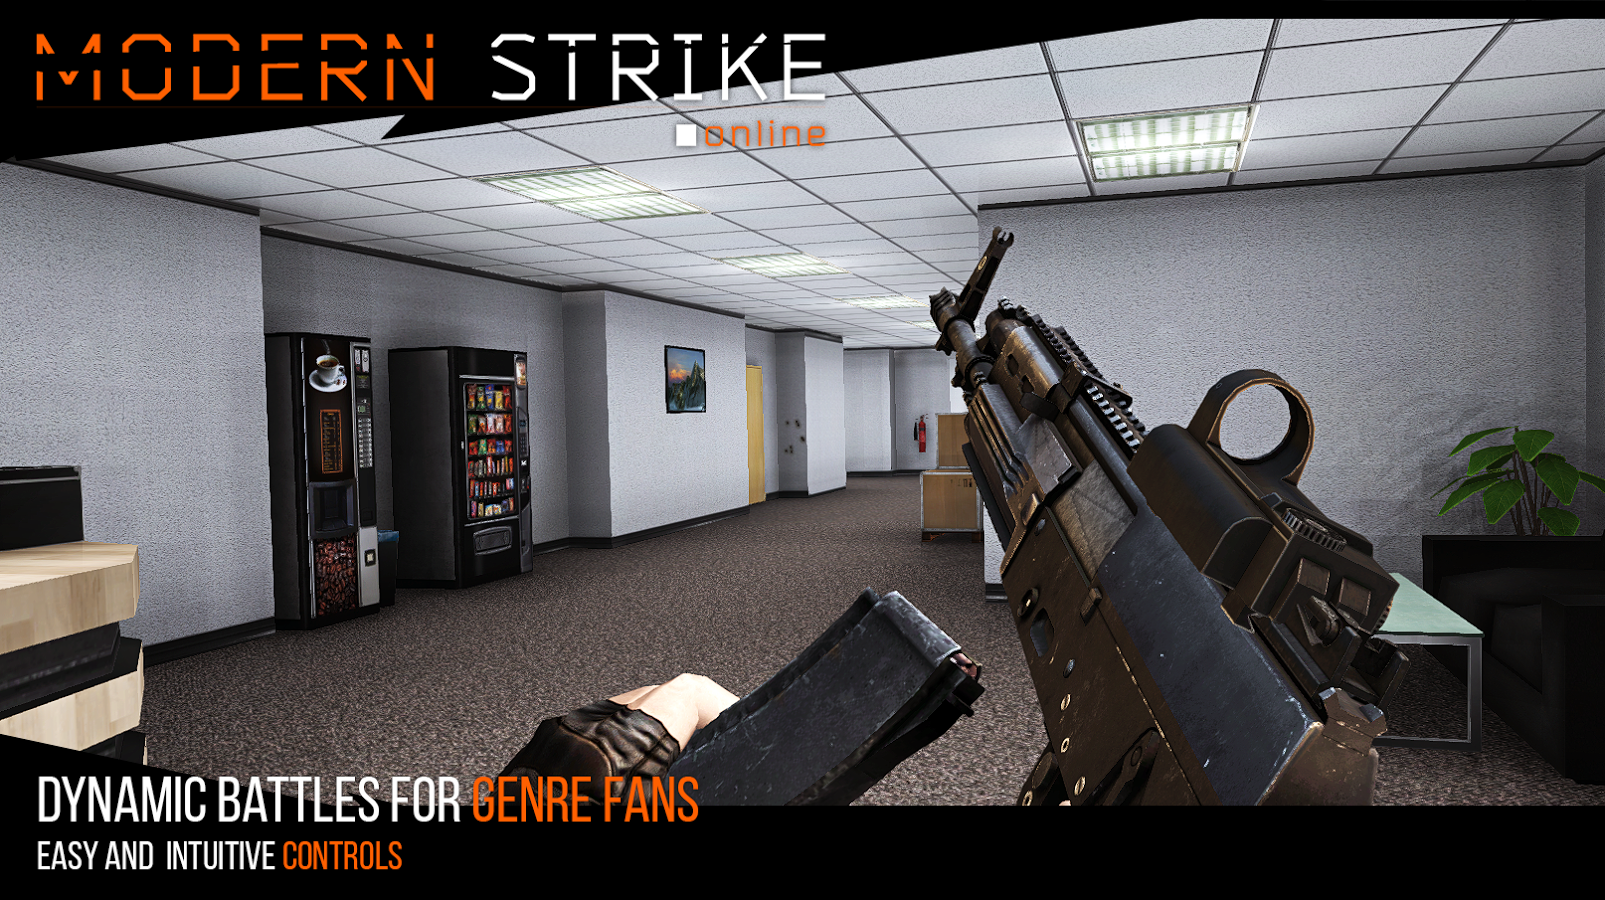 Download Modern Strike Online for PC (Windows 10, 8.1, 8, 7, XP computer) or MAC APK for Free